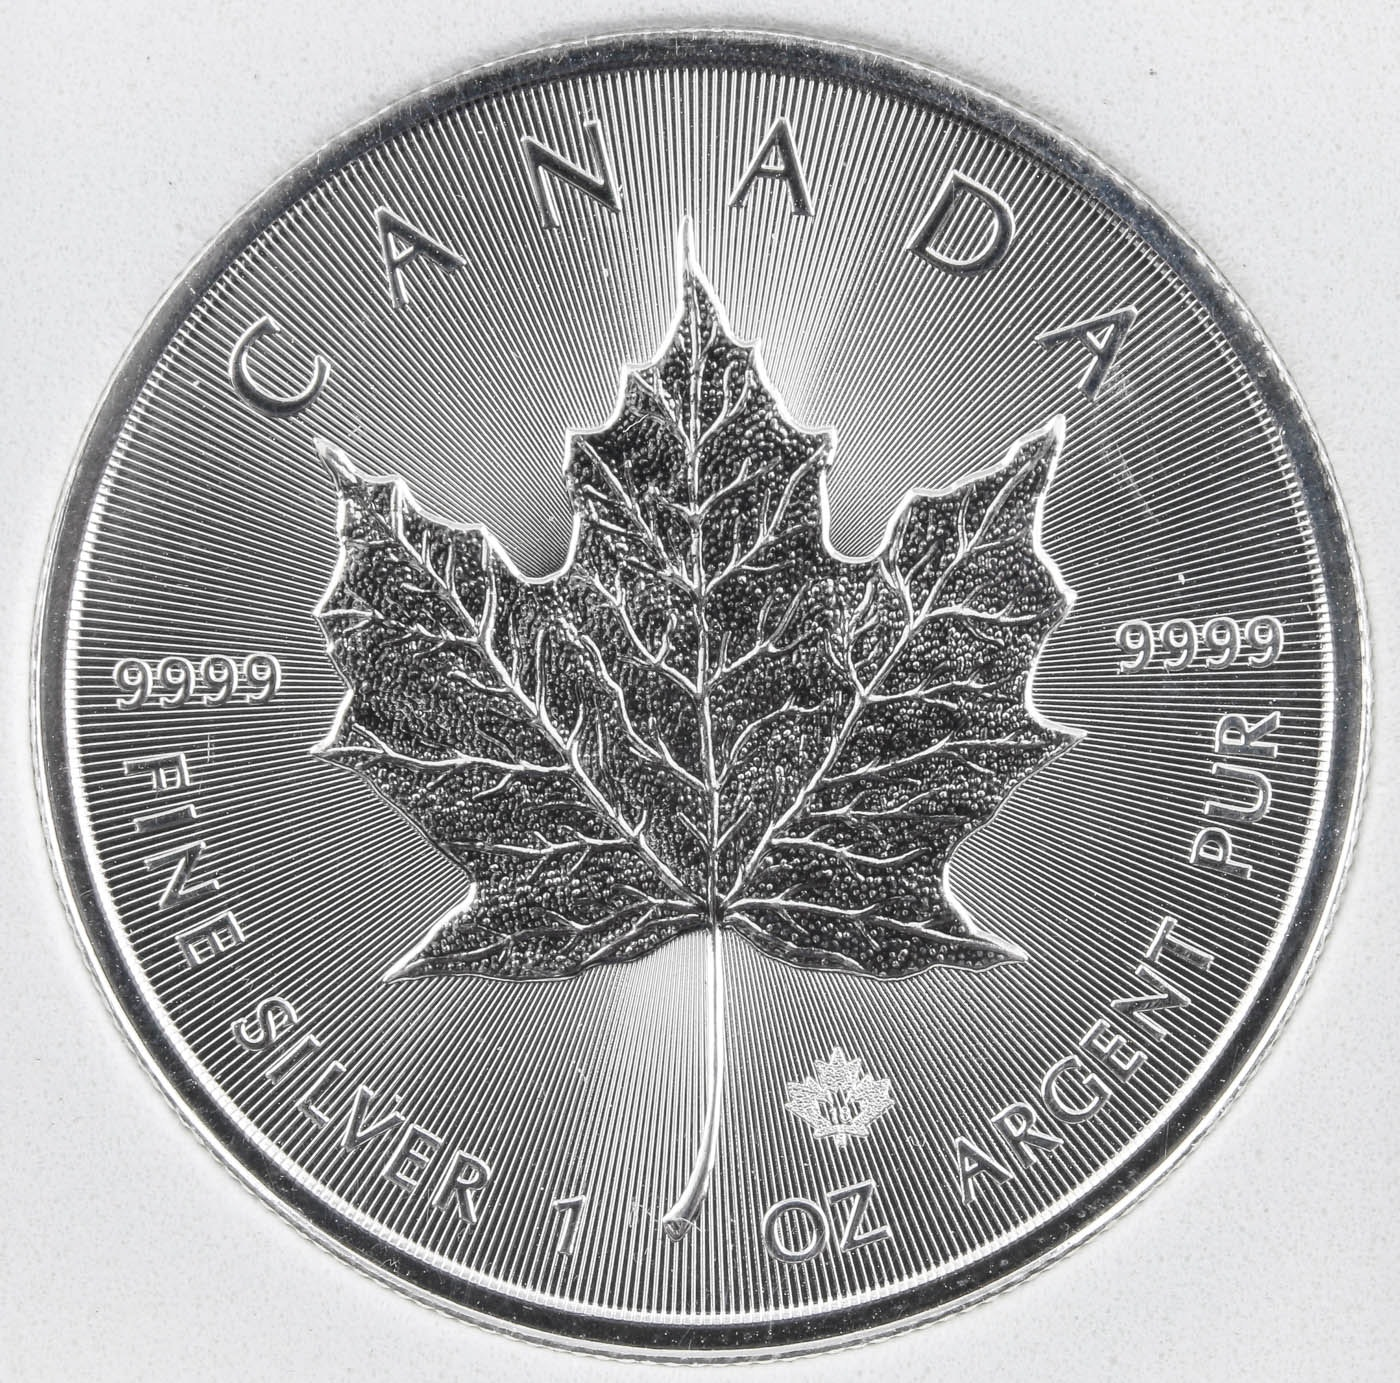 Encapsulated 2018 Canadian Five Dollar Maple Leaf Silver One Troy Ounce Coin